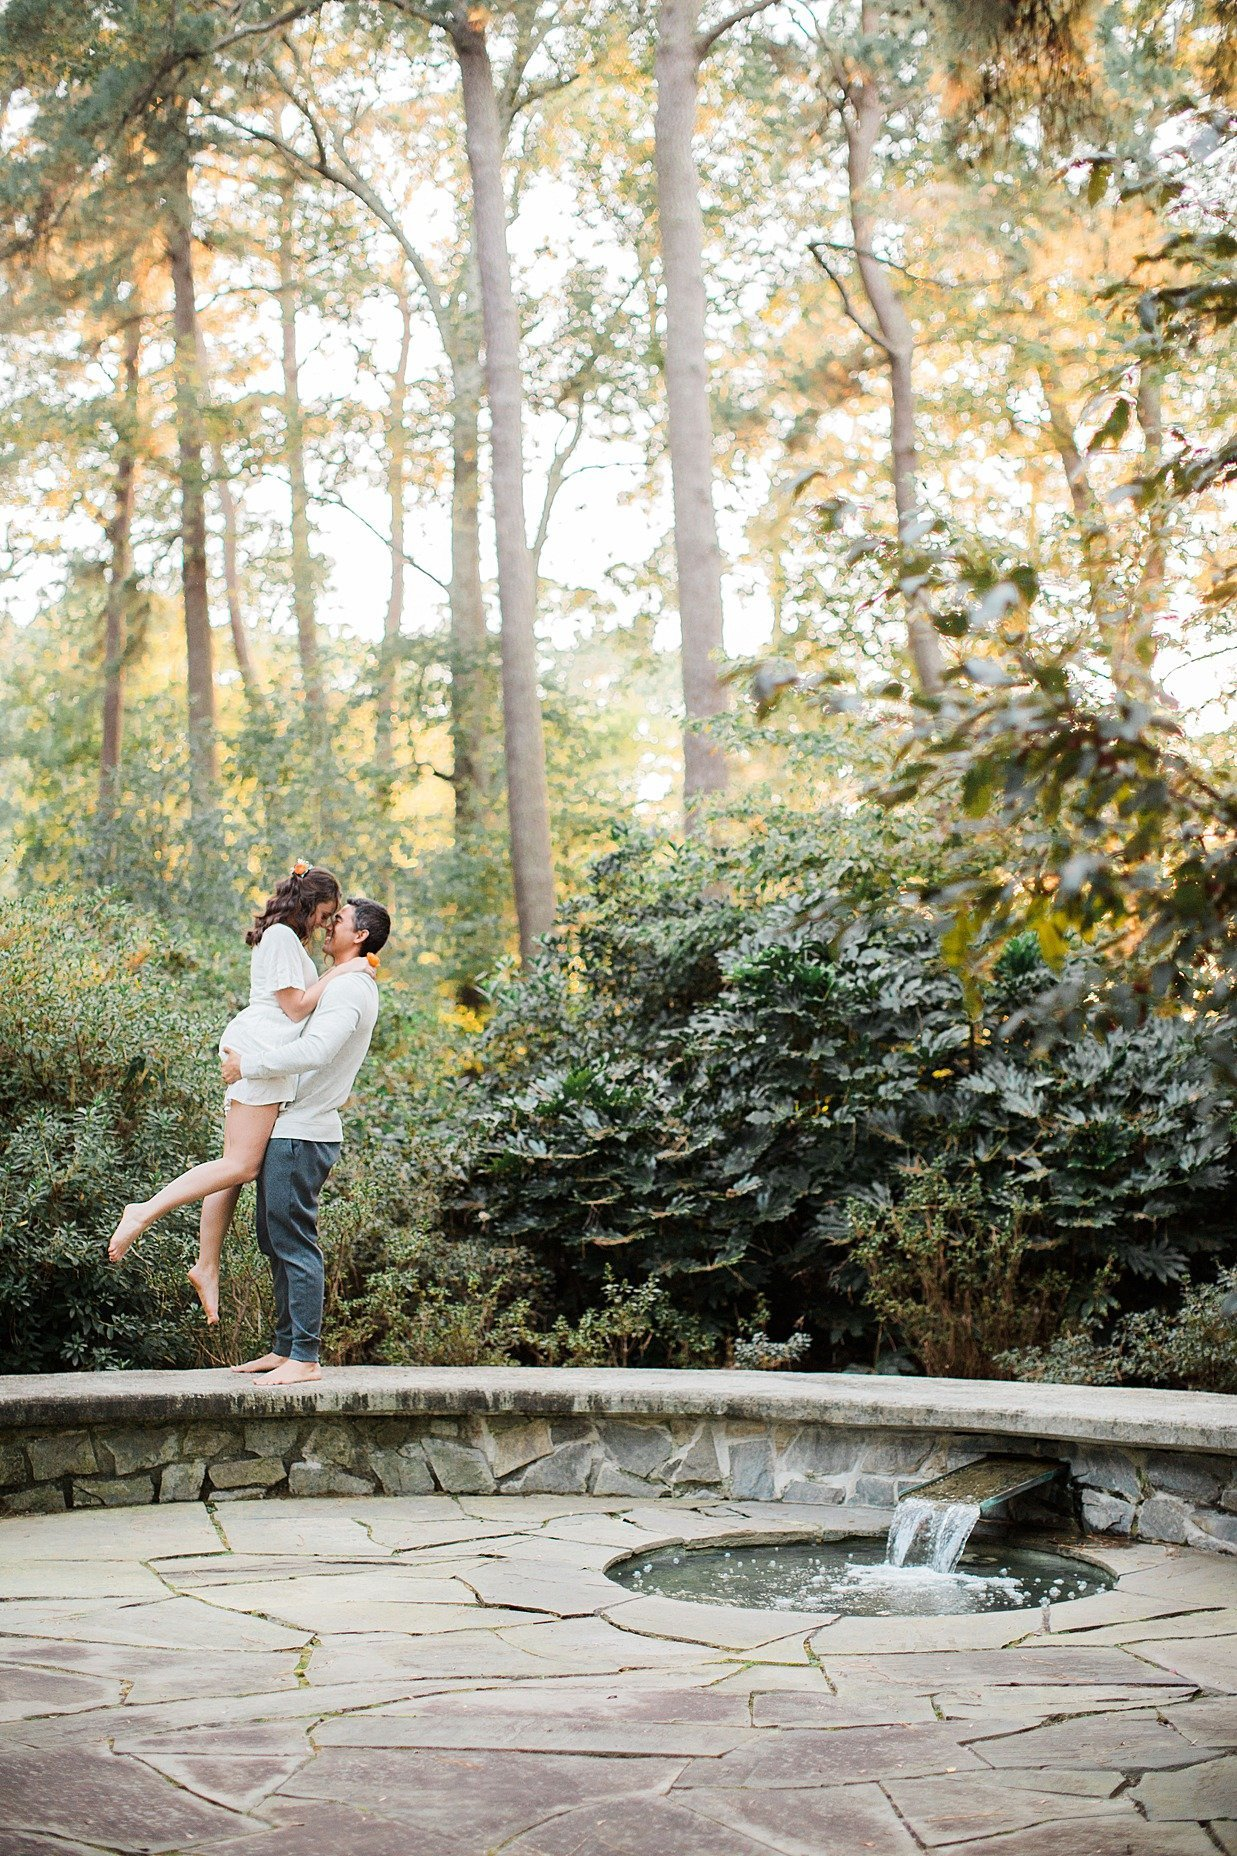 Outdoor Intimate Sweet Couples Boudoir Photo Shoot Norfolk Botanical Gardens VA Yours Truly Portraiture-156